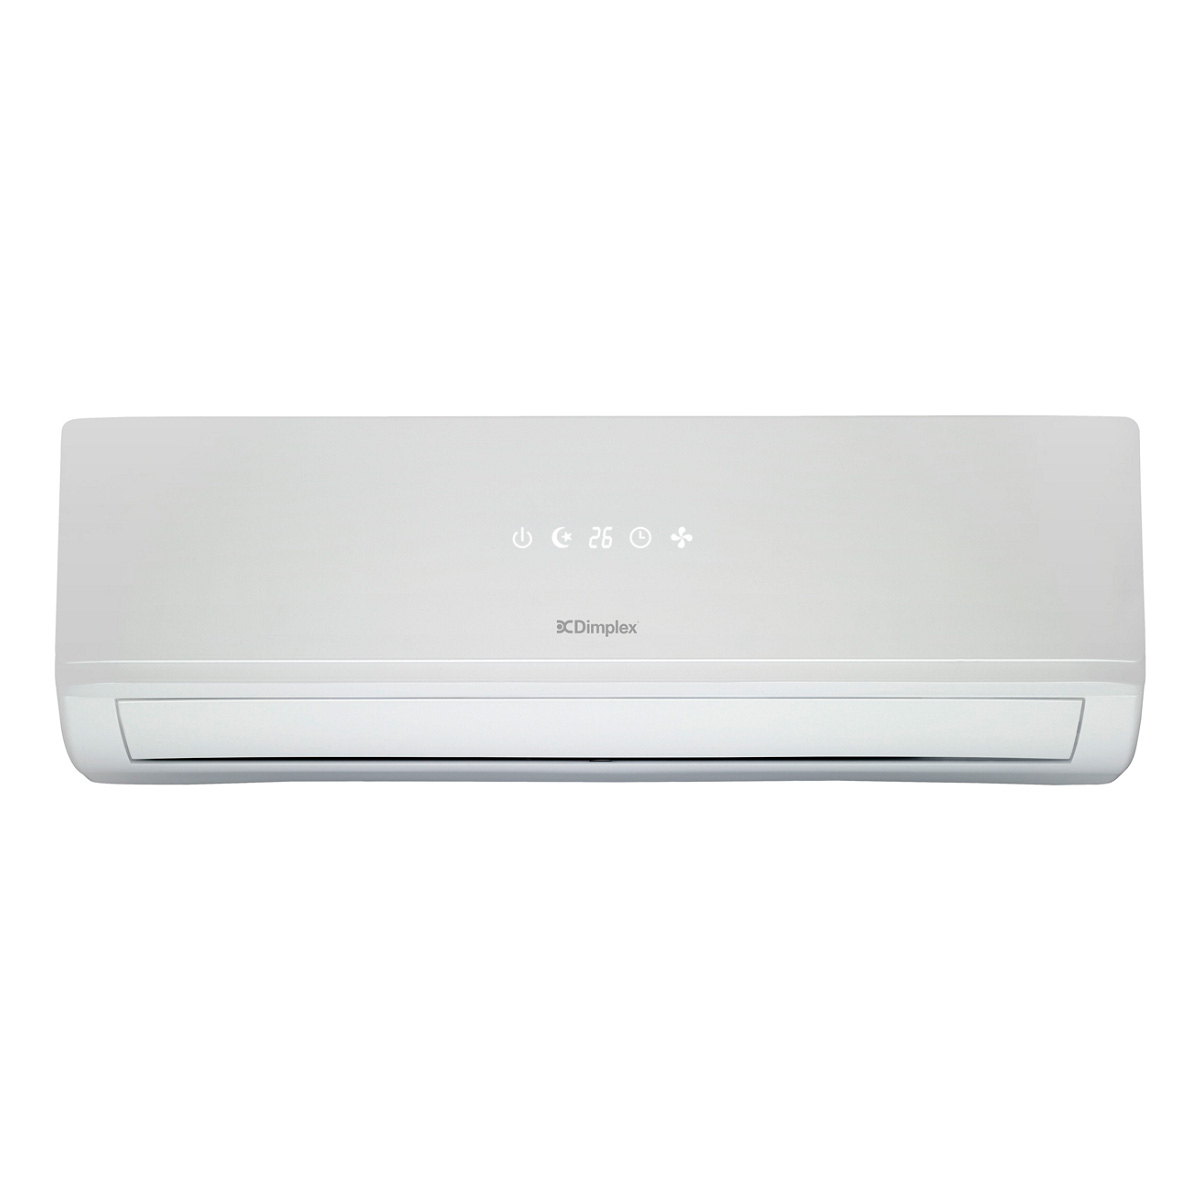 Dimplex DCSS12 3.2kw Reverse Cycle Split System Inverter Air Conditioner